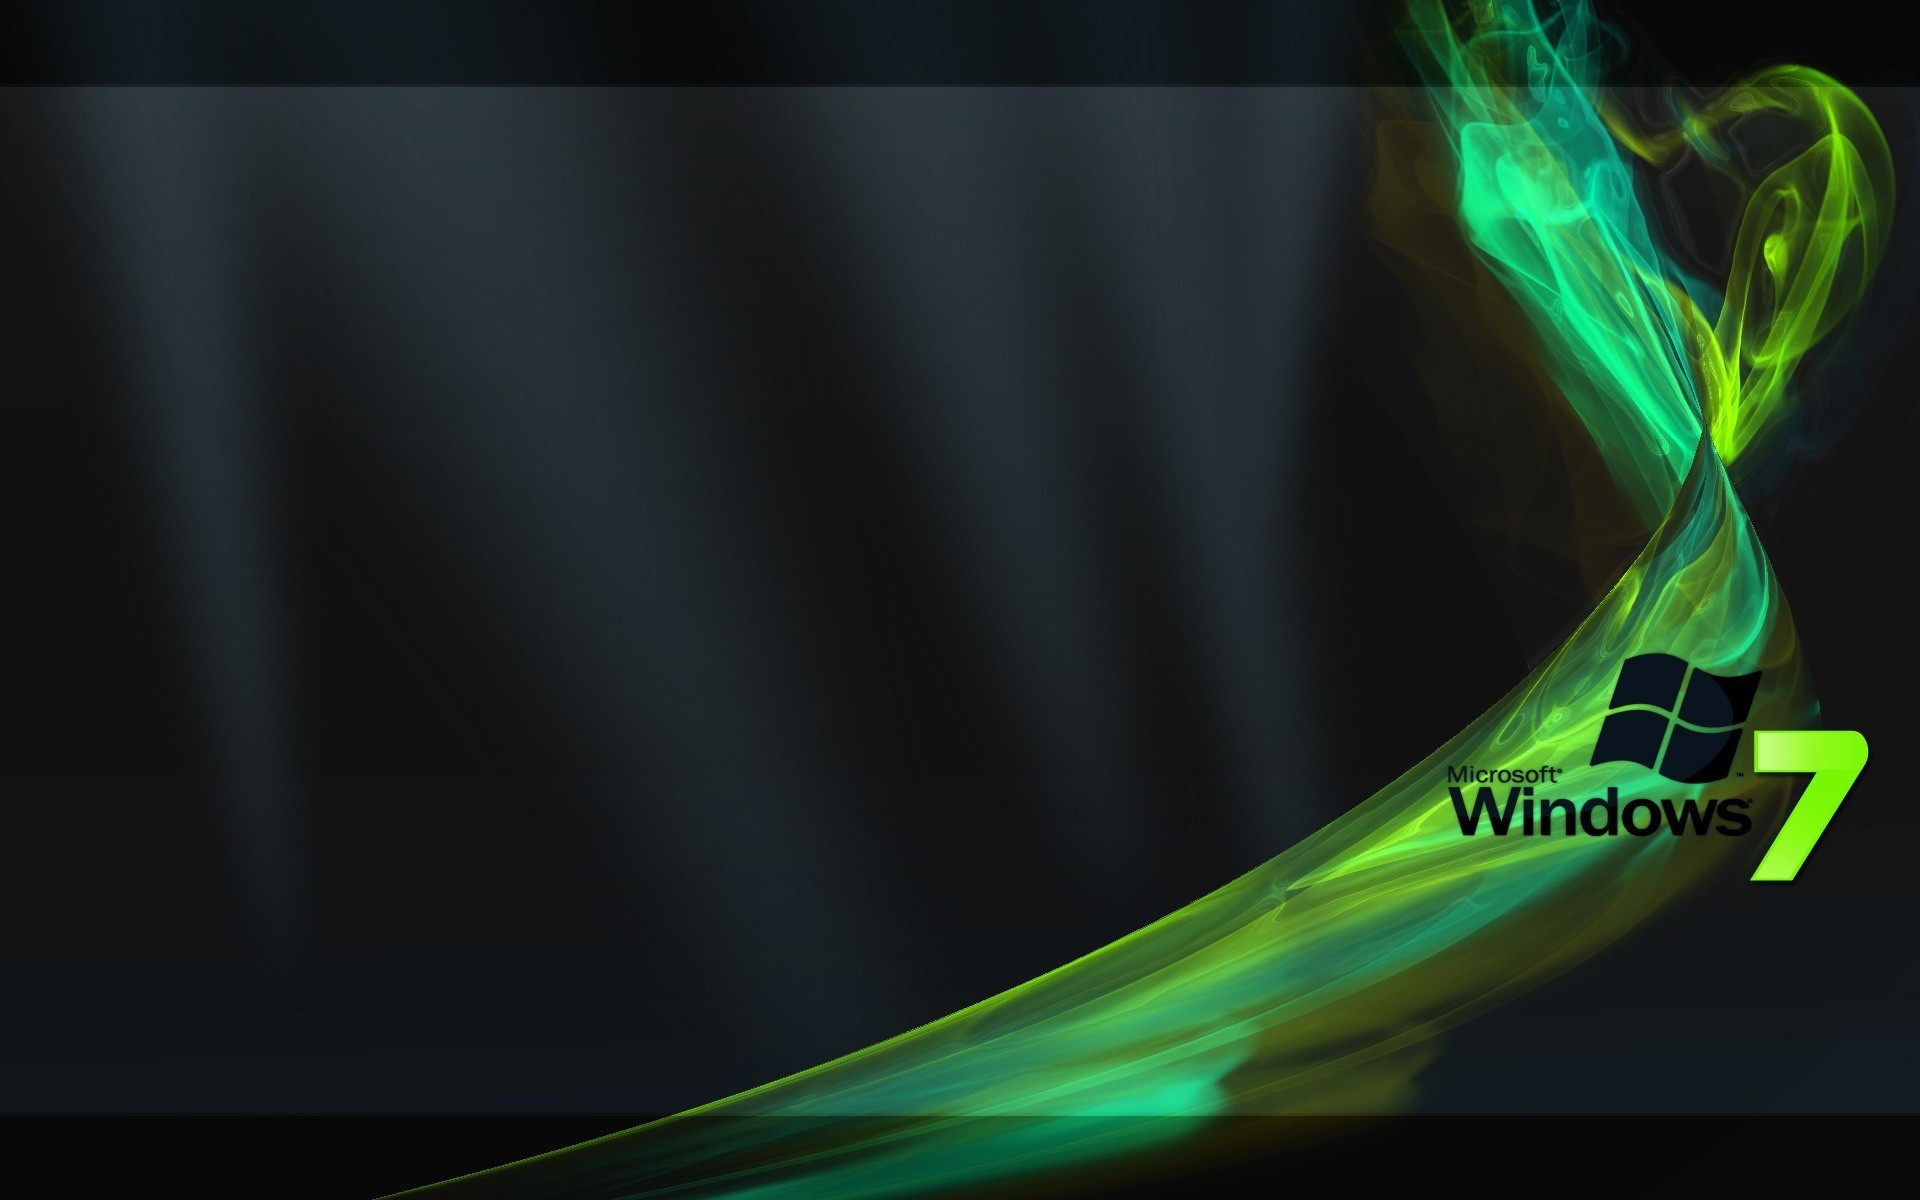 Windows 7 background pictures 71 images for Window 7 hd wallpaper